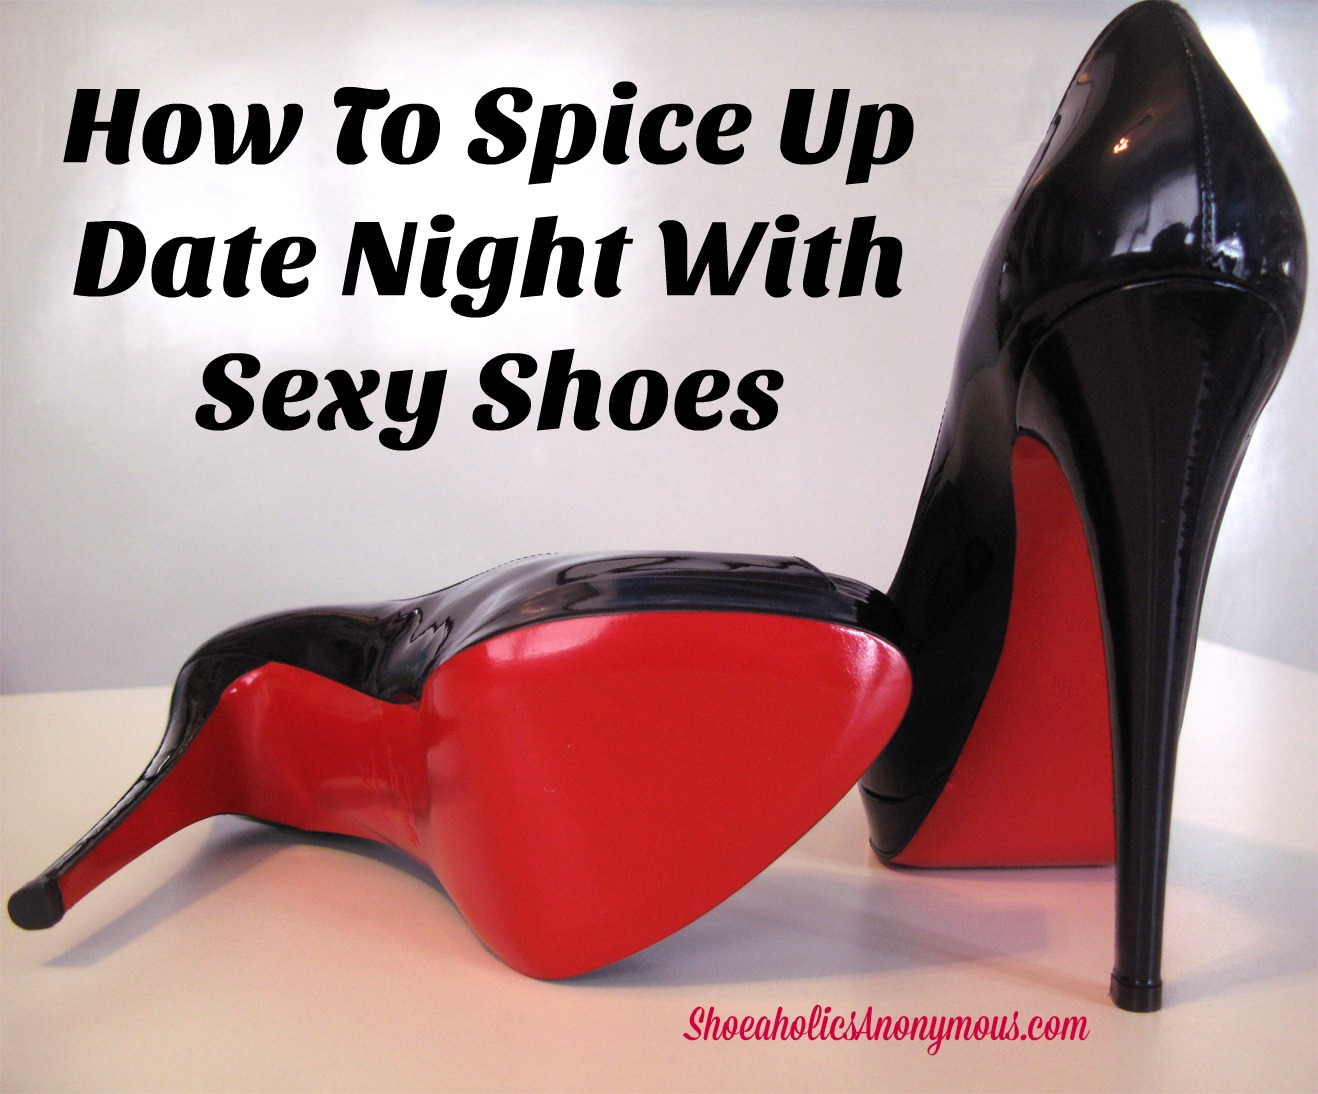 How To Spice Up Date Night With Sexy Shoes